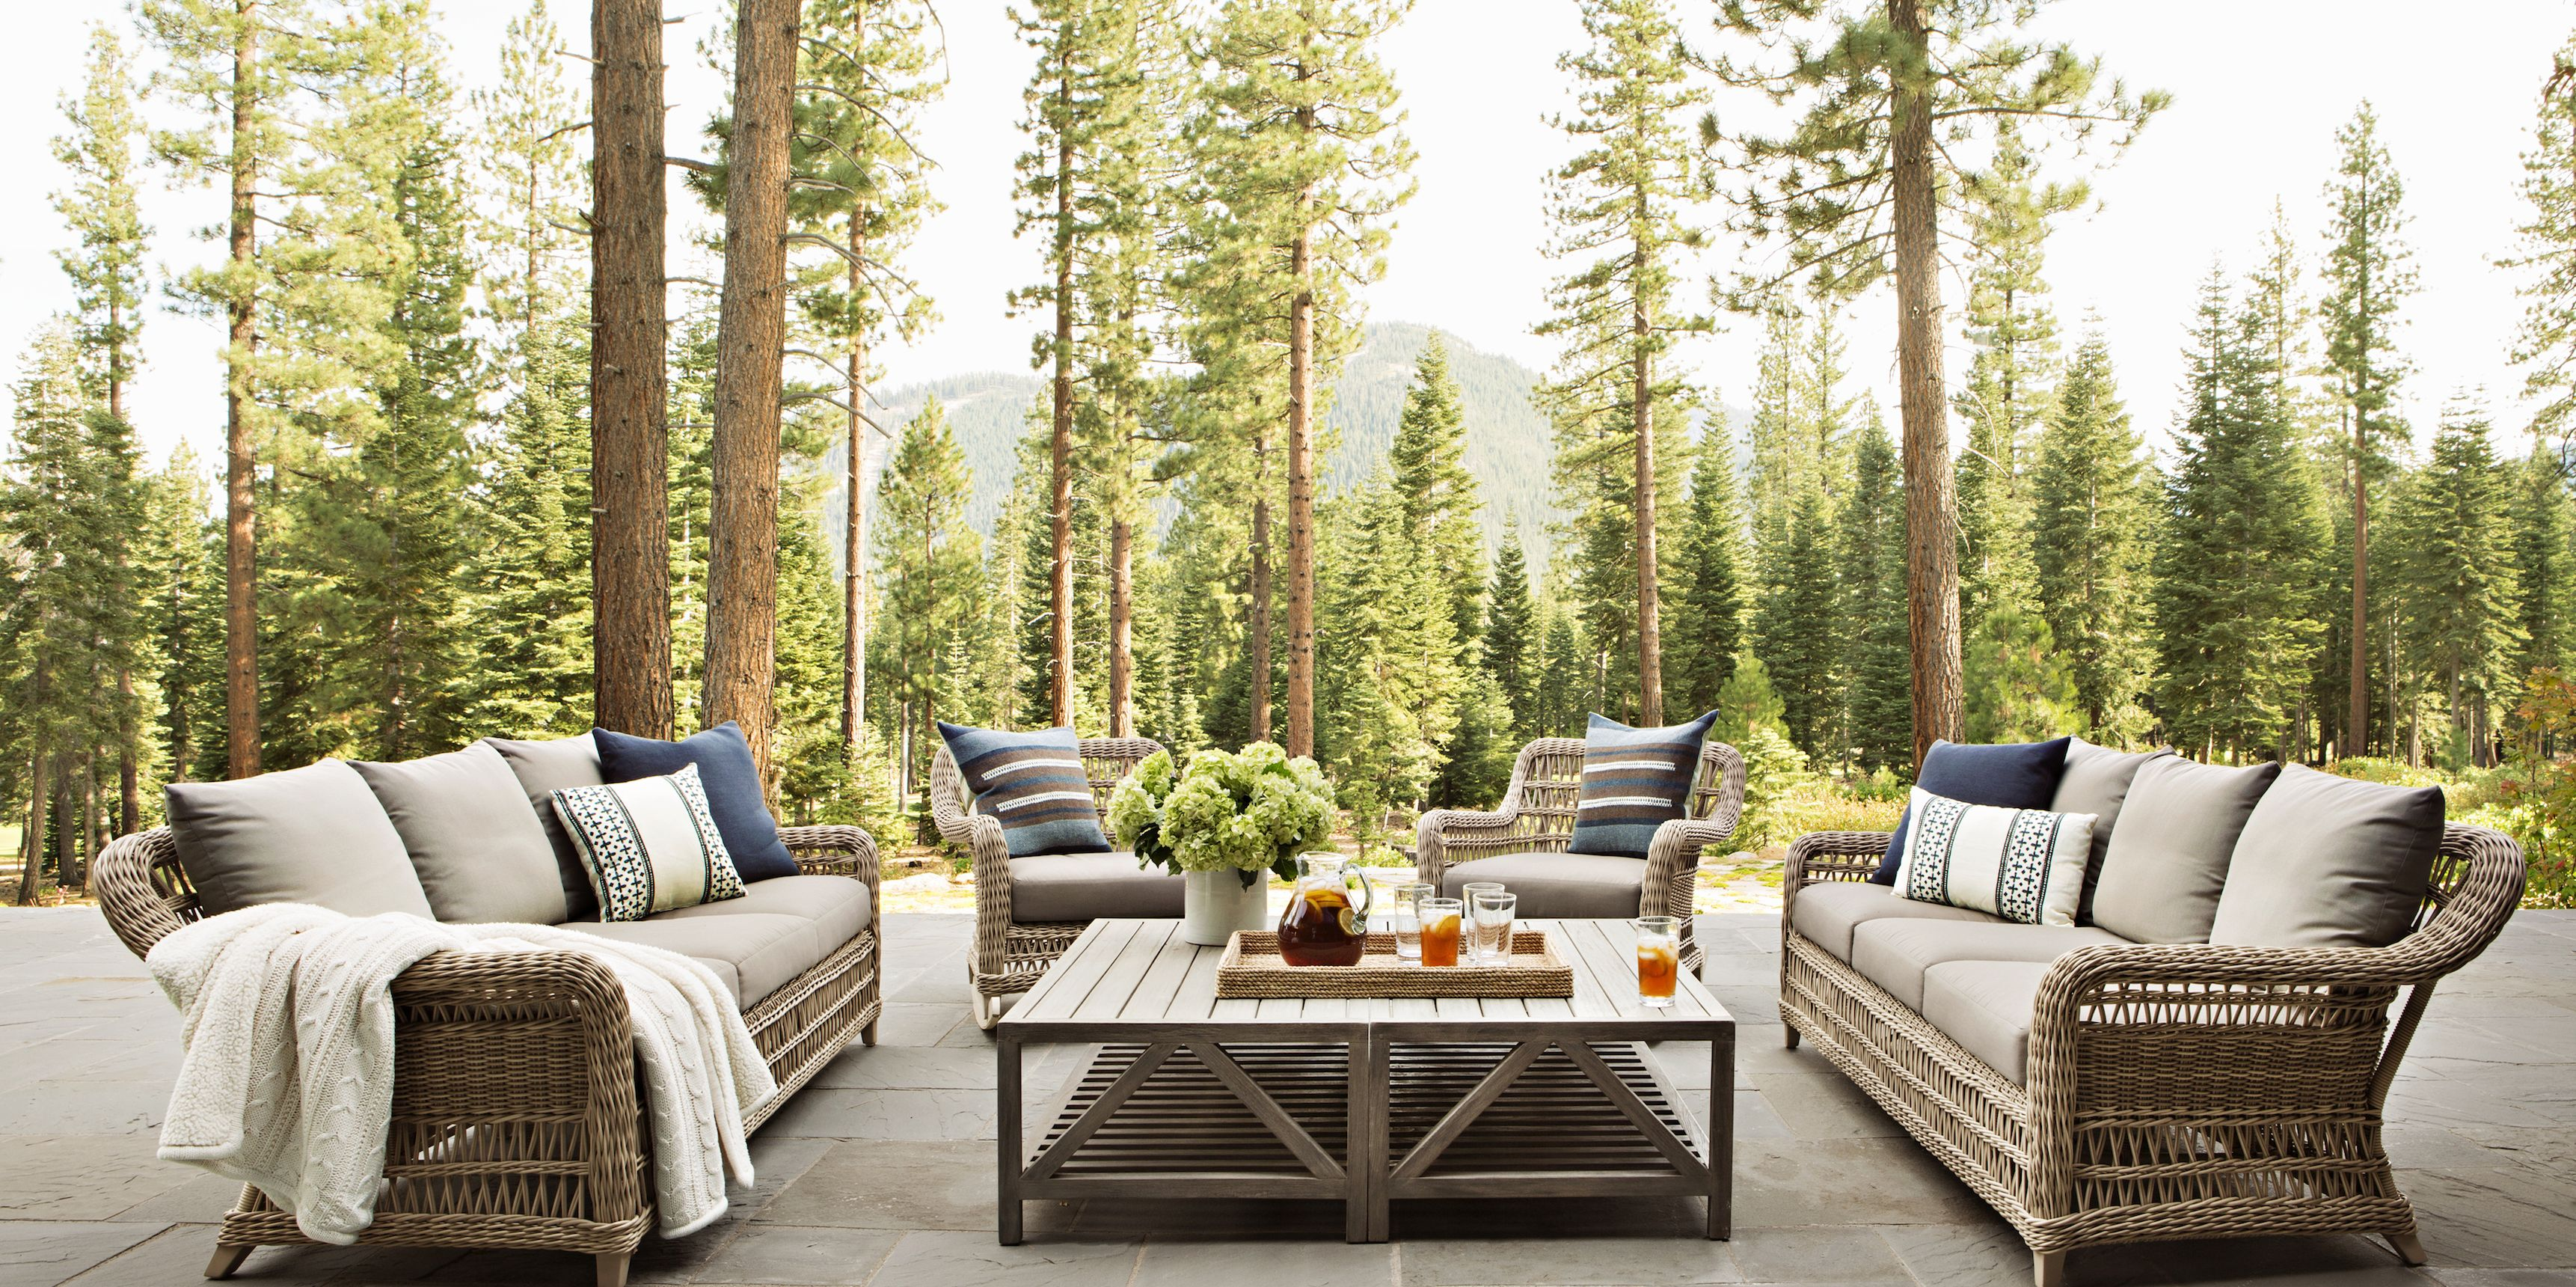 30 Best Patio Ideas For 2018 Outdoor Patio Design Ideas And Photos